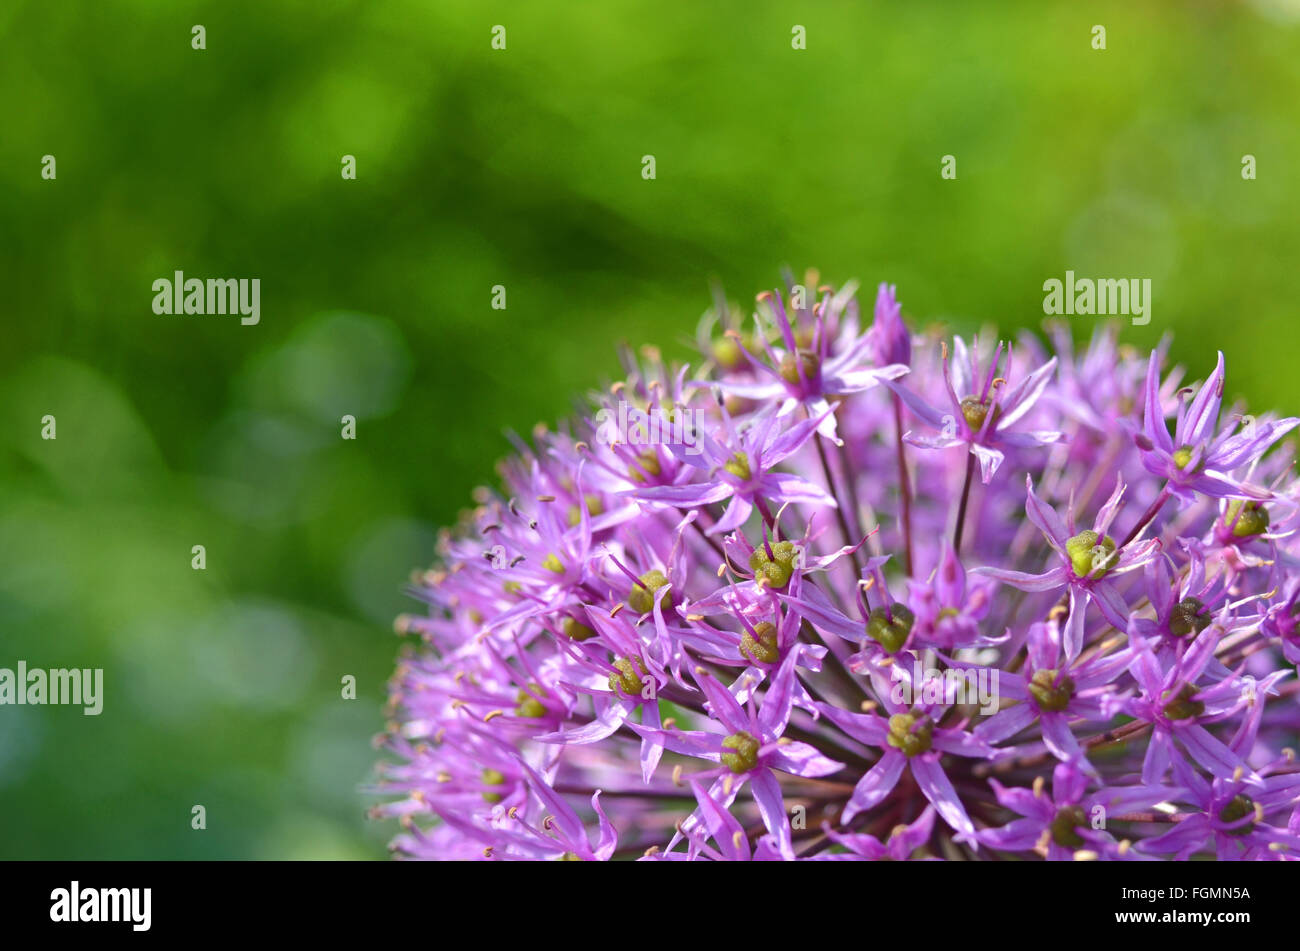 Close-up of a Persian Onion flower - Stock Image